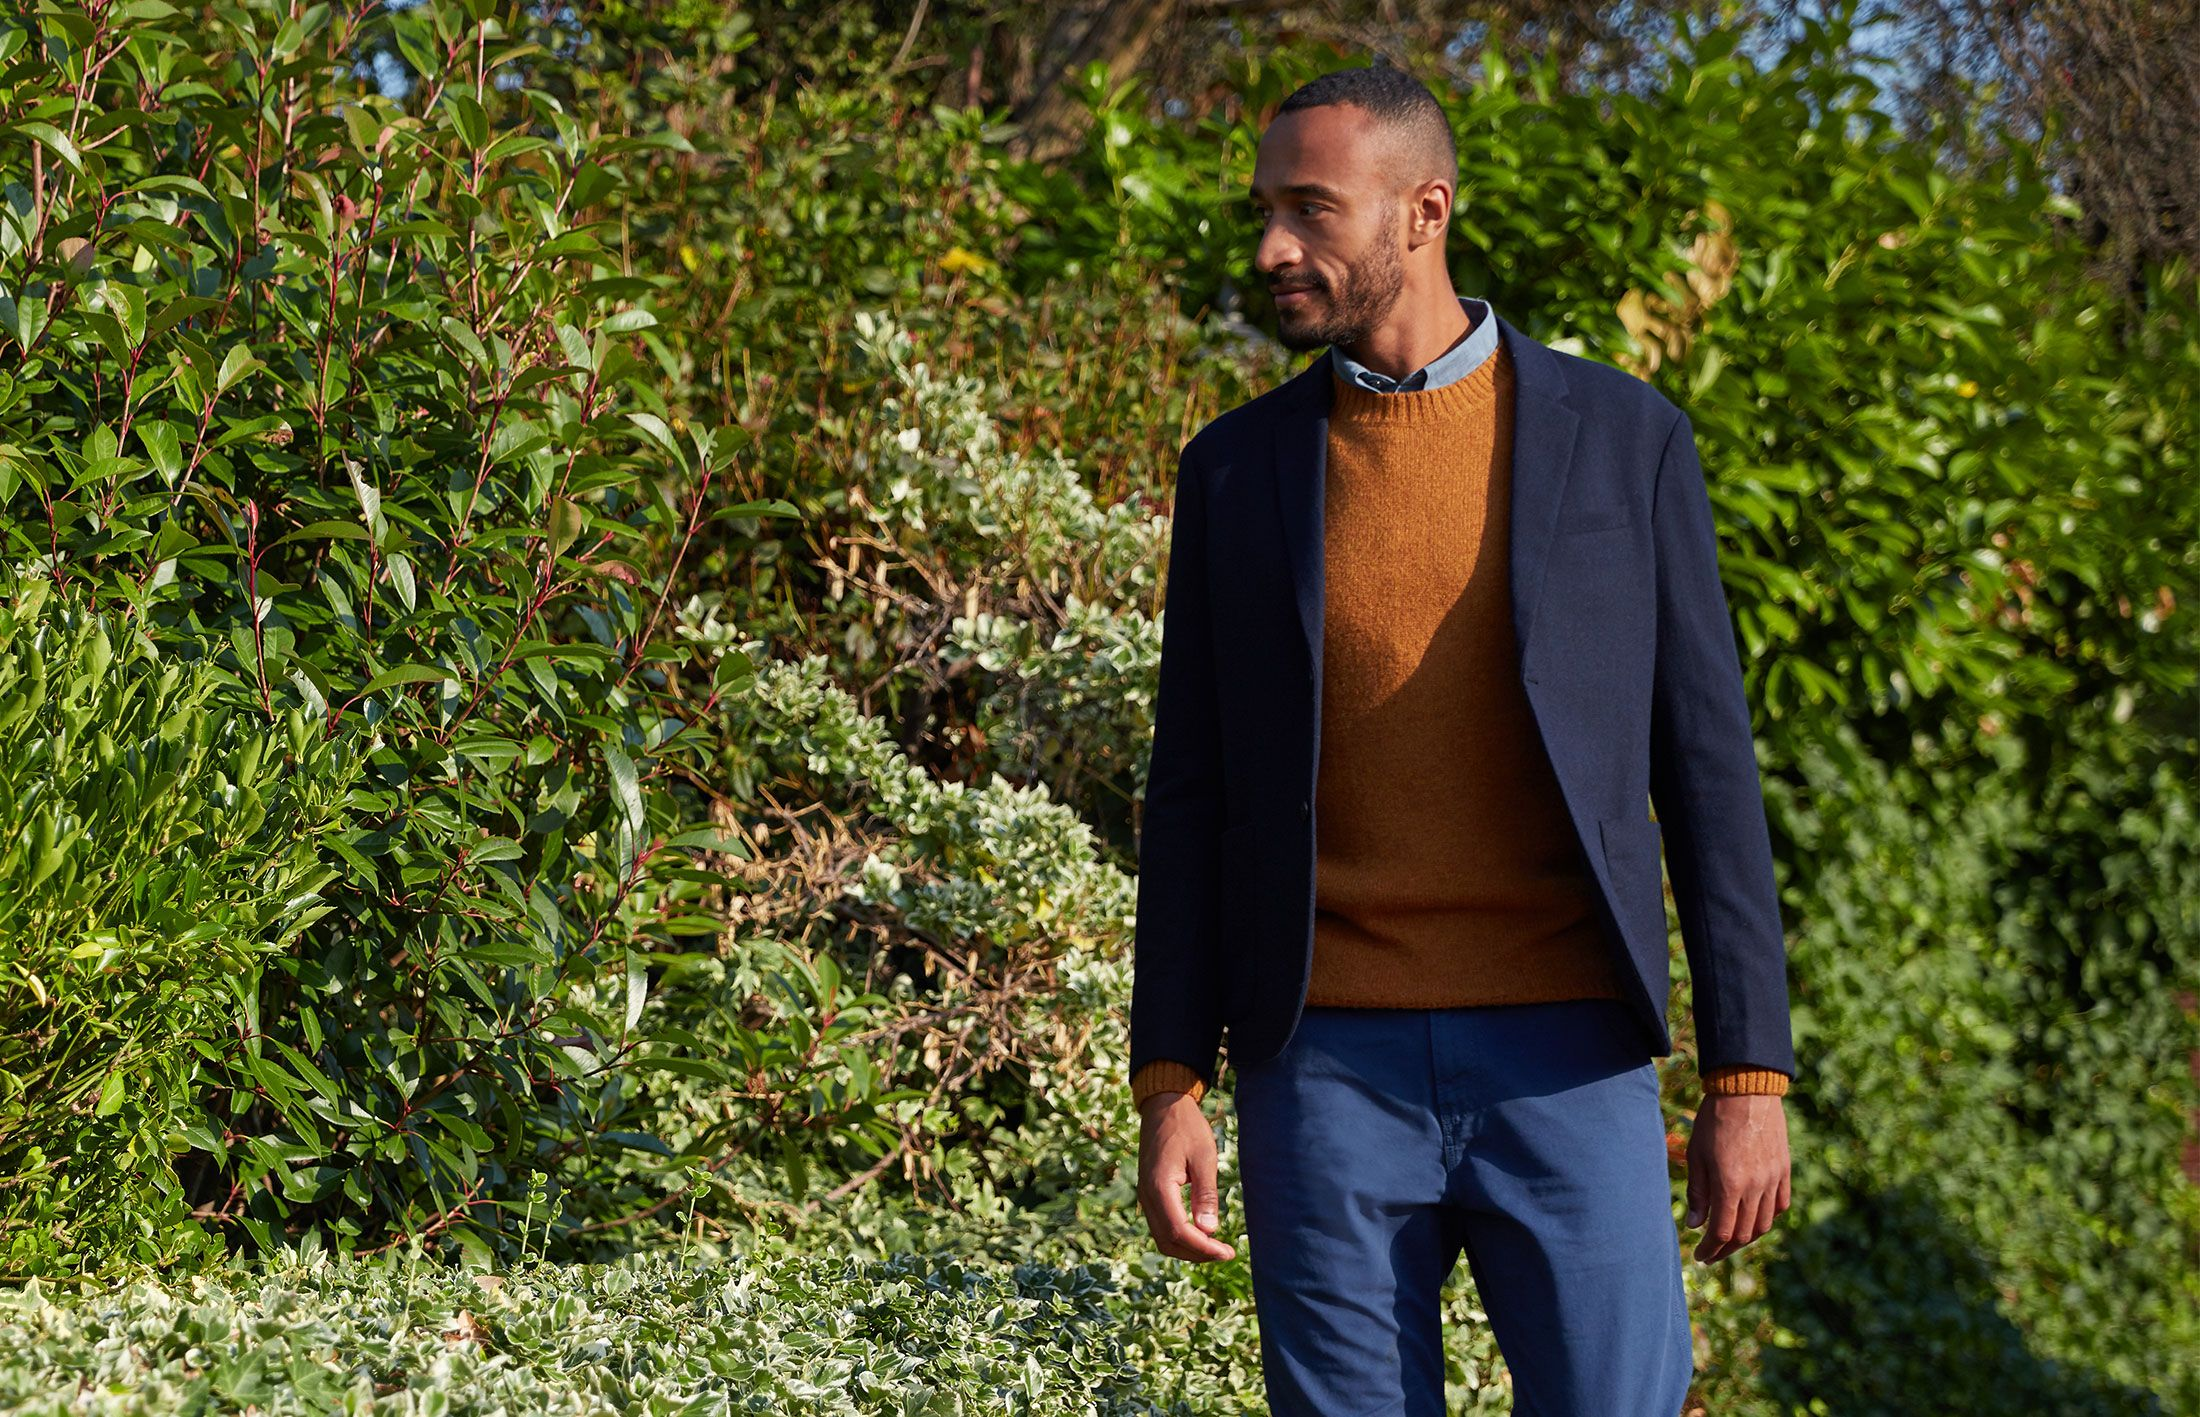 New Ways To Wear Smart Casual